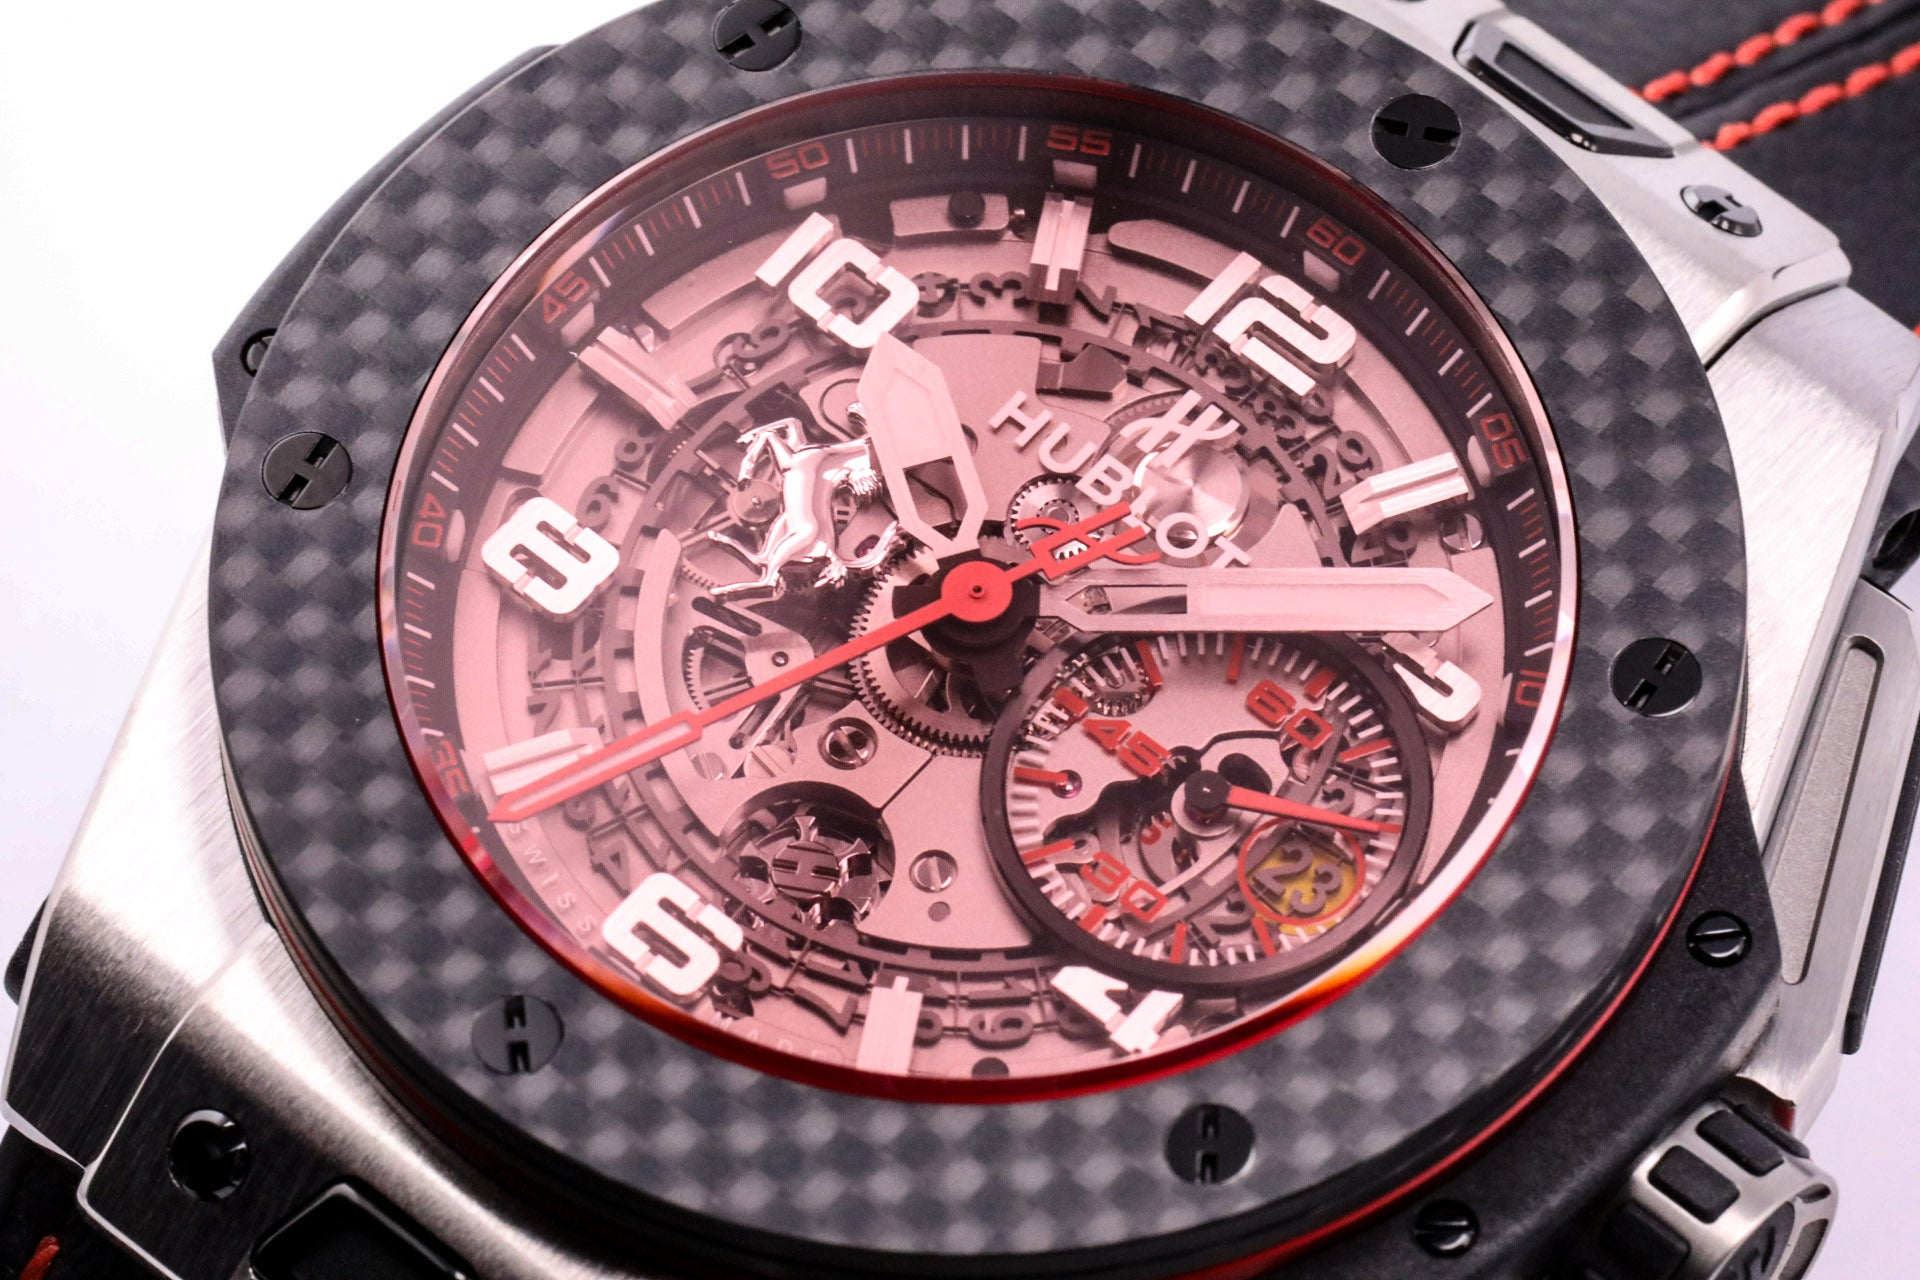 Hublot Big Bang Ferrari Titanium Carbon Chronograph Limited Edition